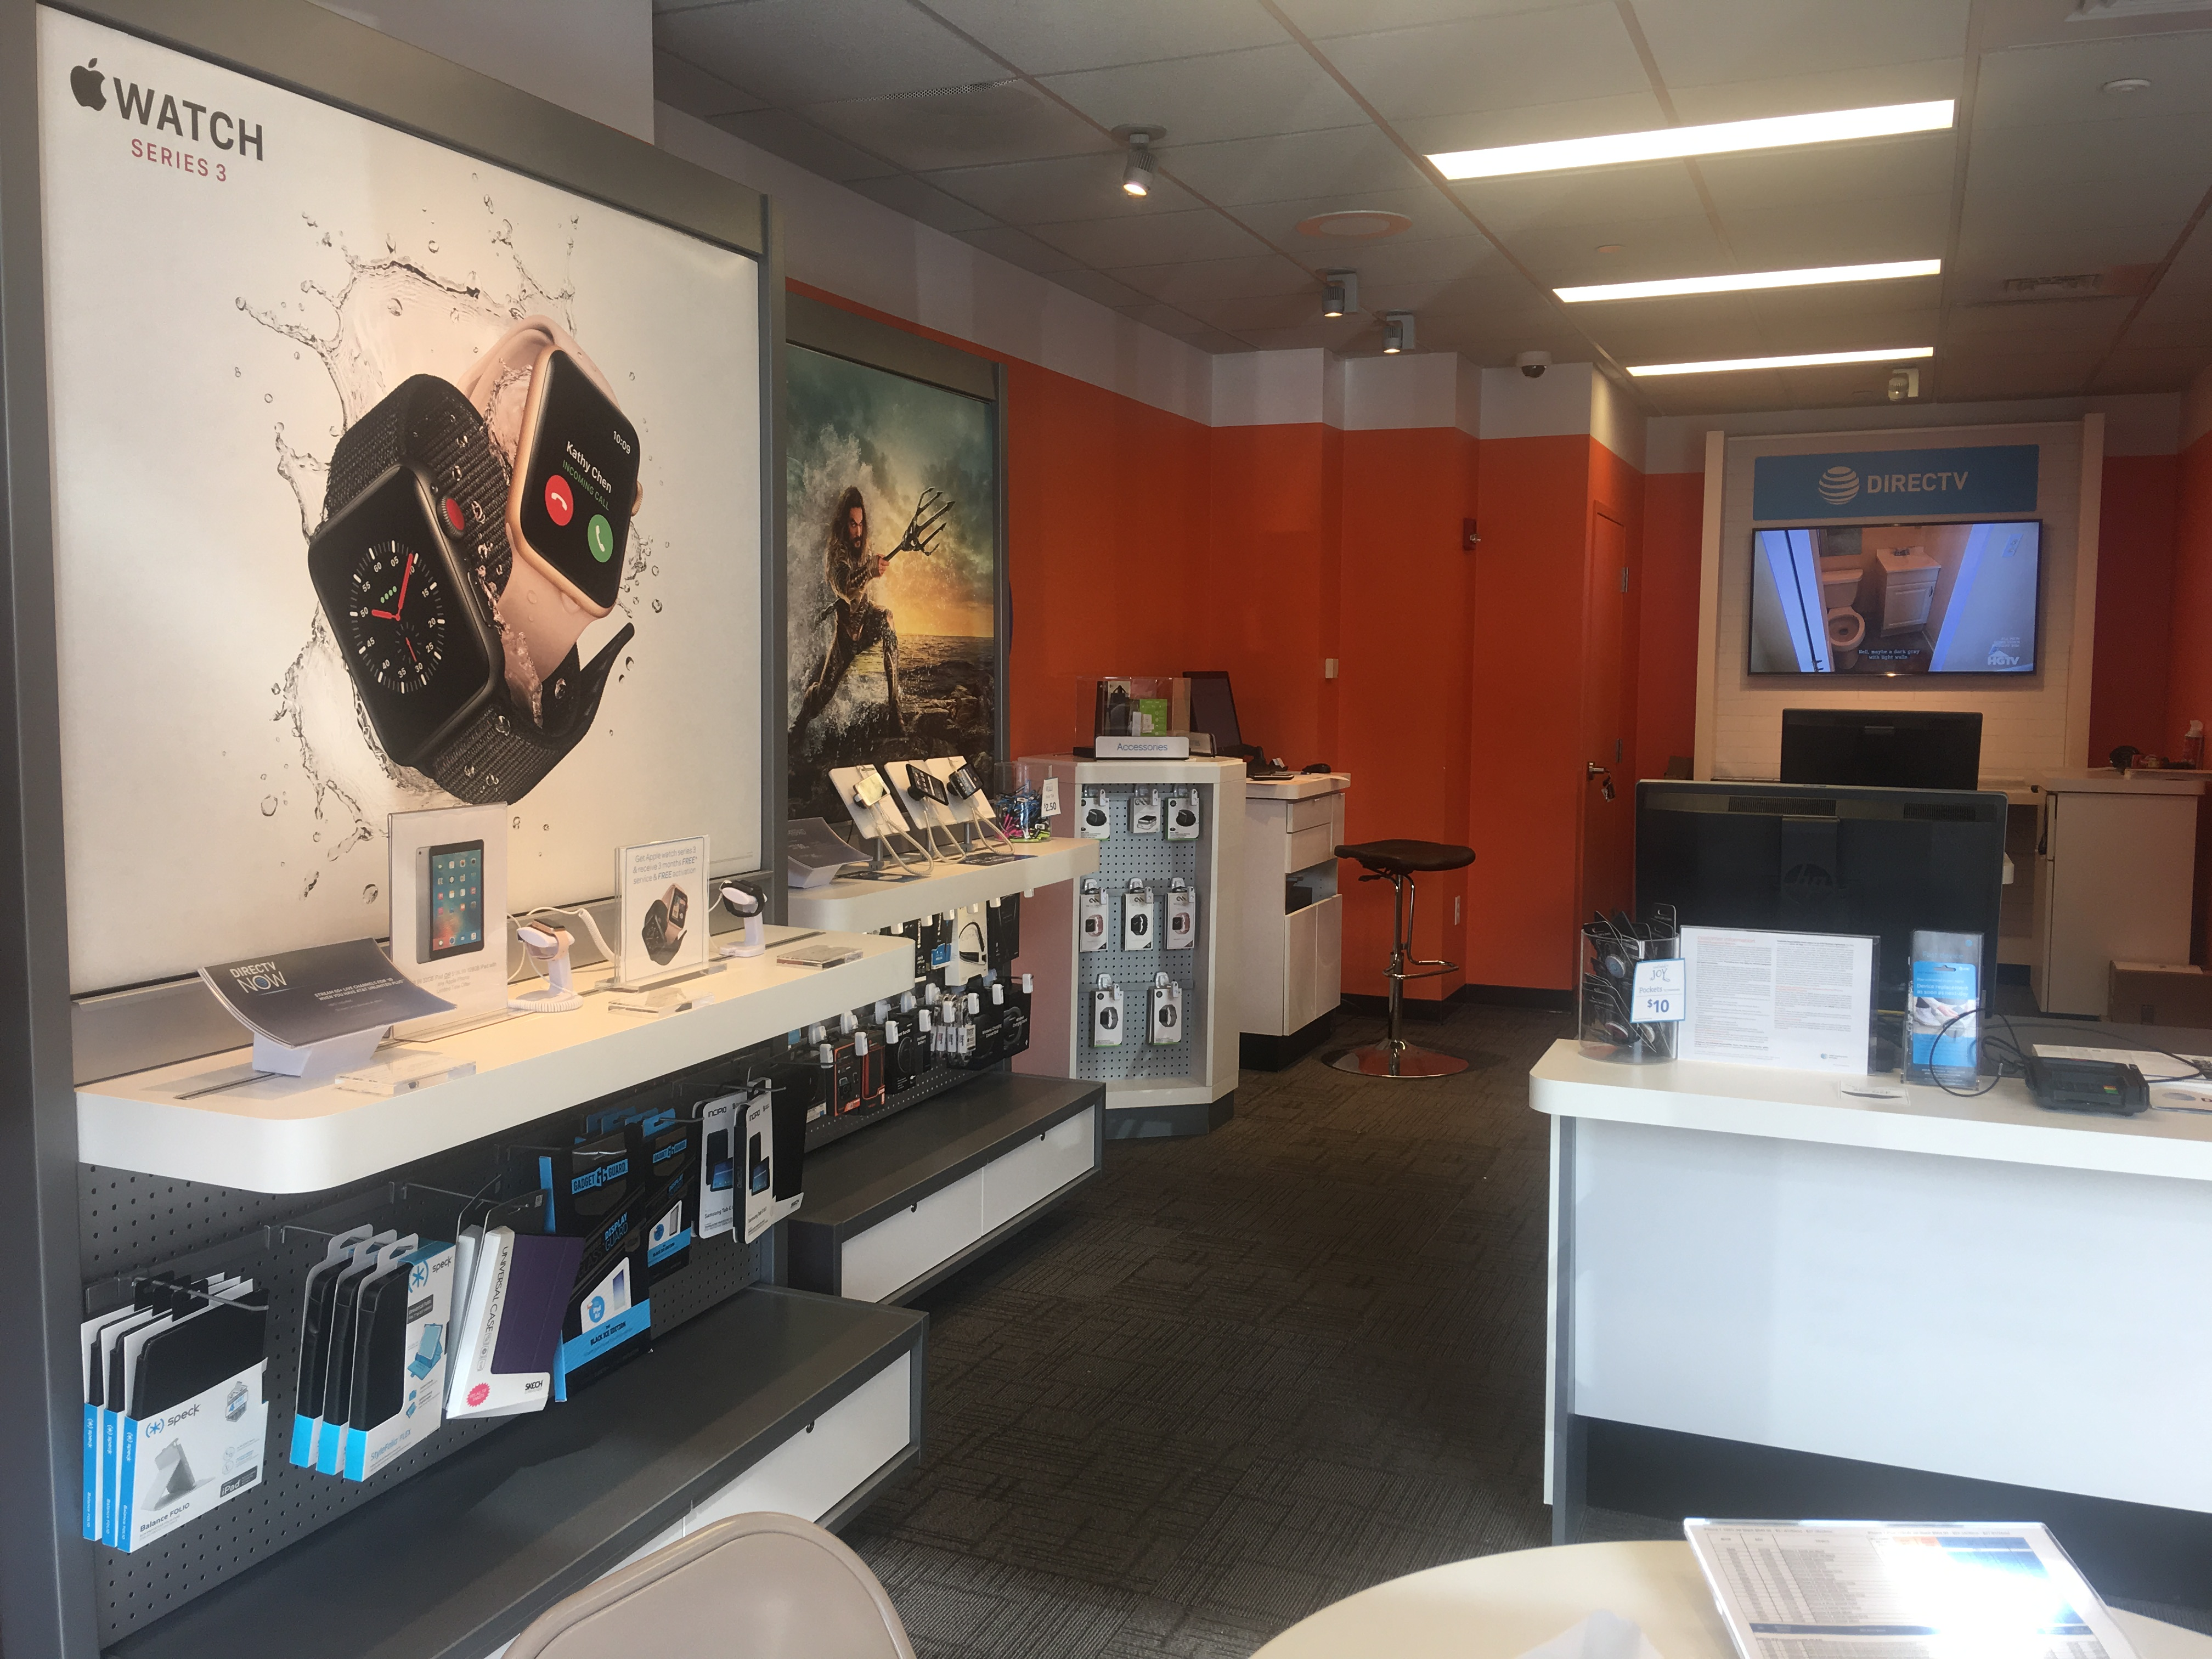 AT&T Store image 12